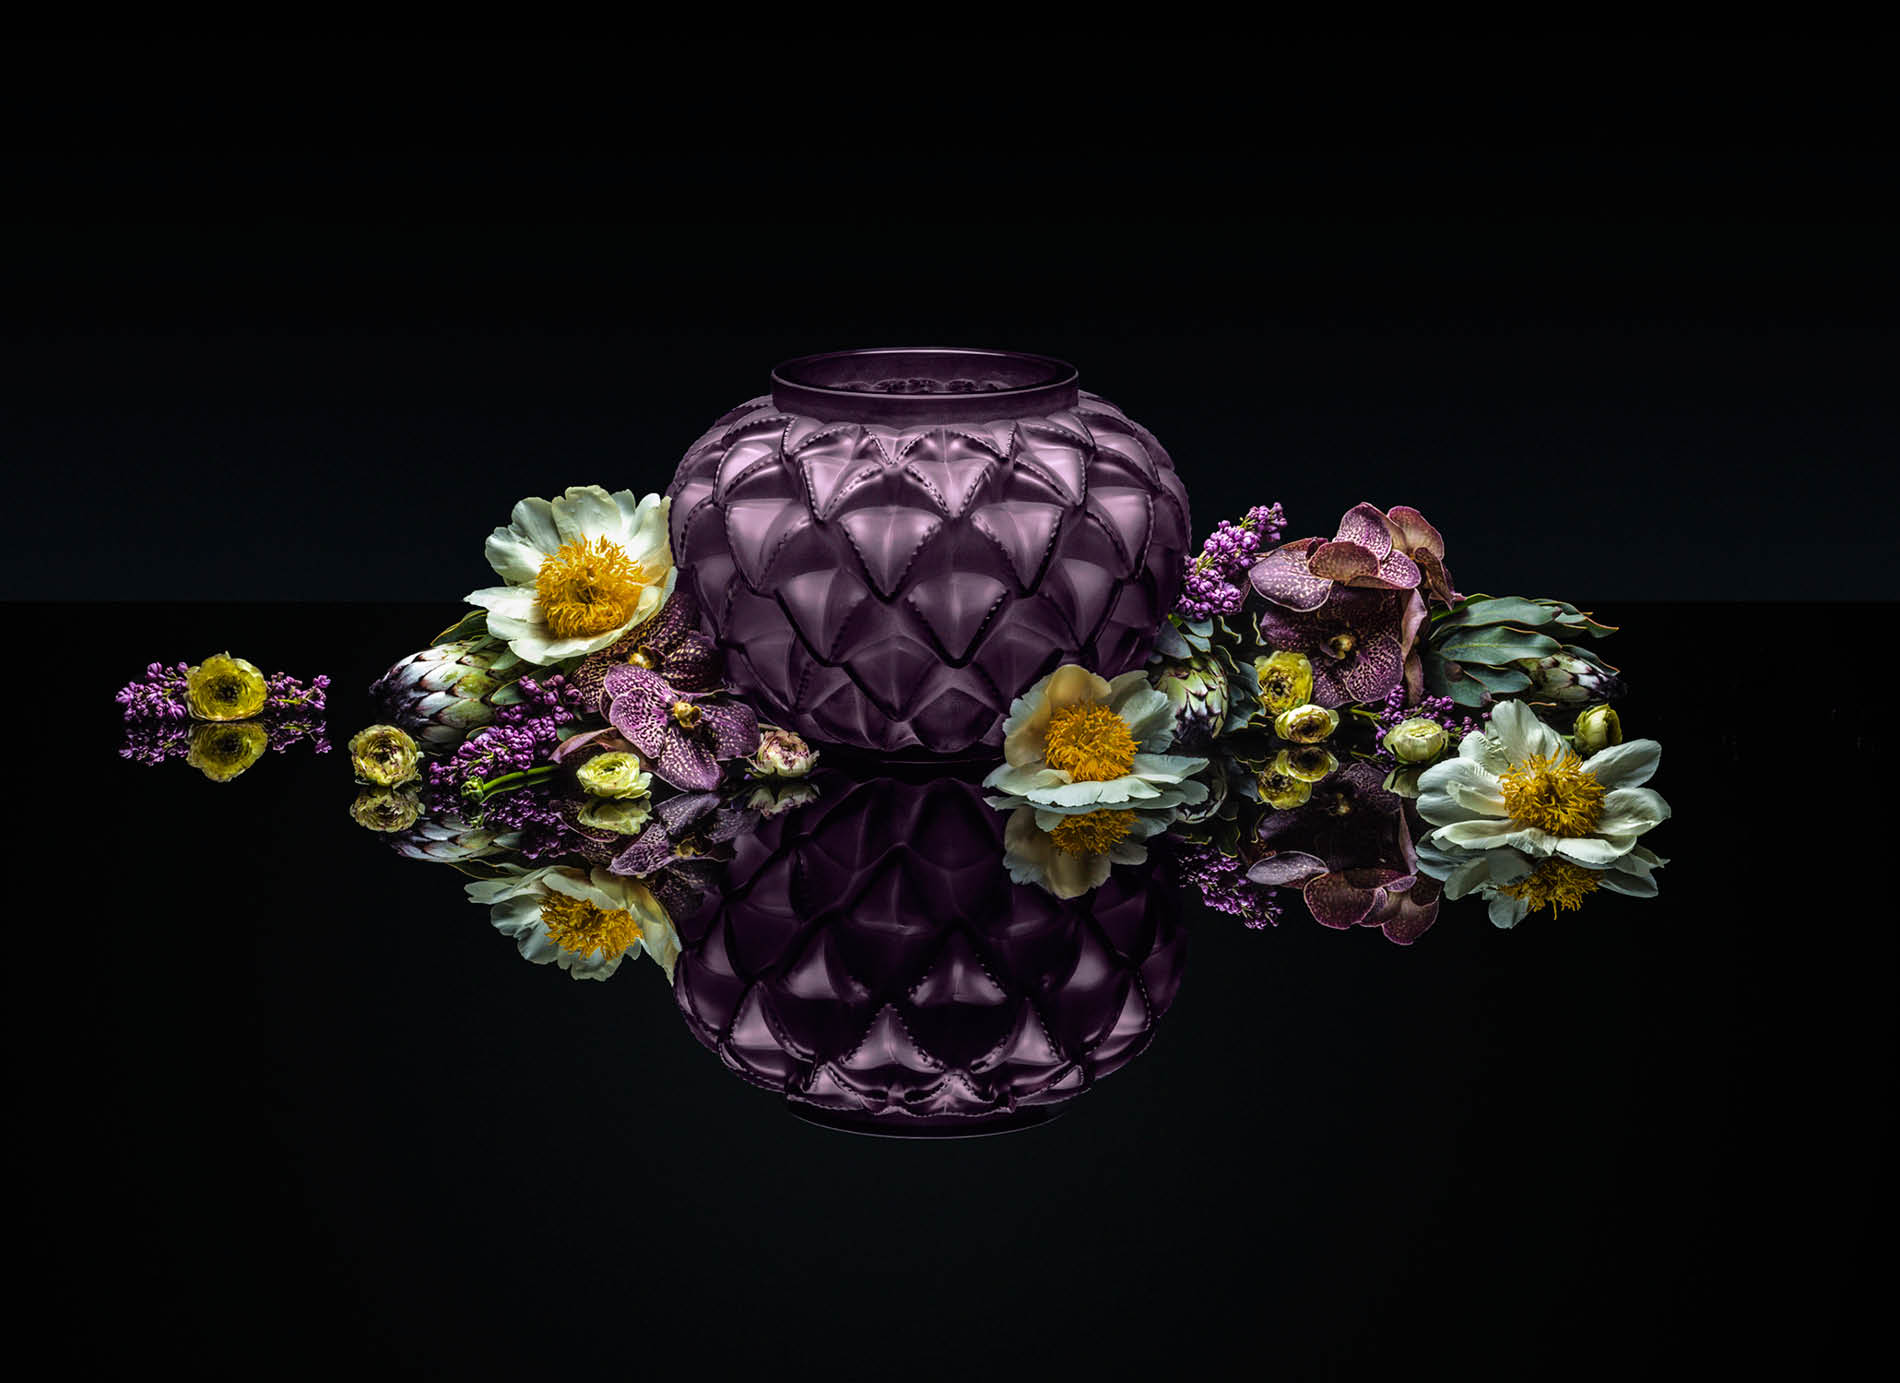 Wide purple Lalique vase surrounded by flowers